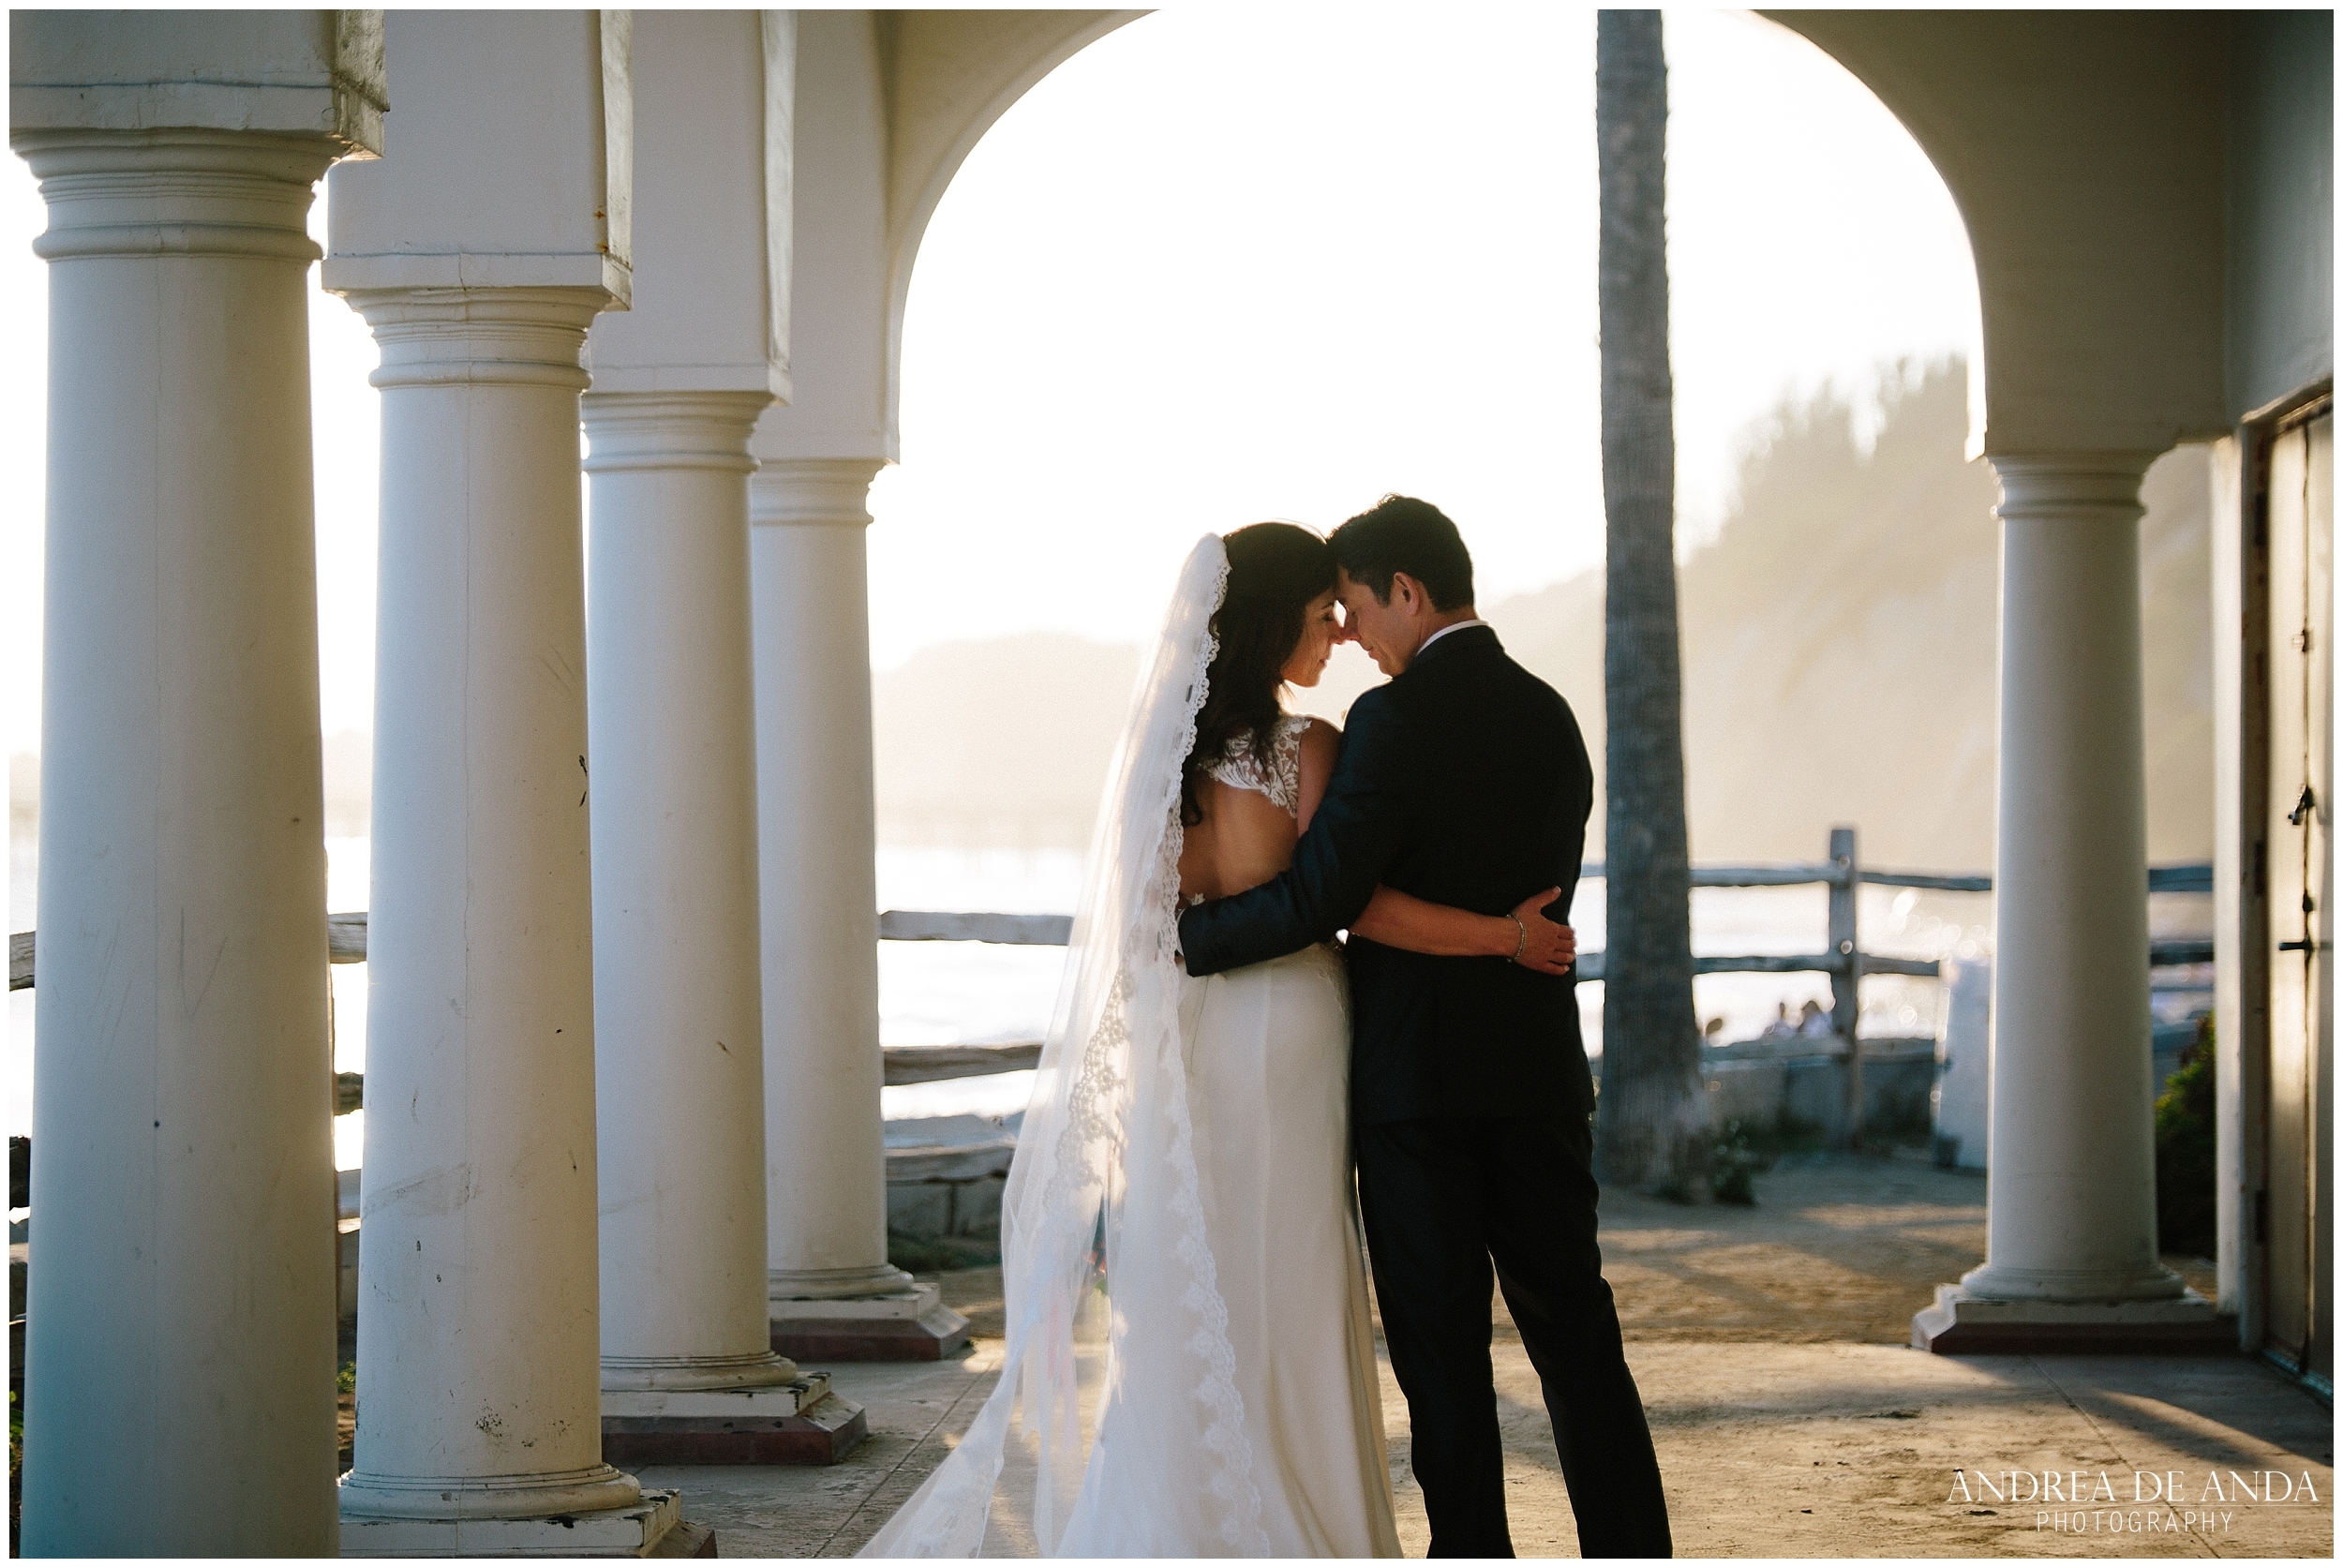 Bacara Santa Barbara Wedding by Andrea de Anda Photography__0020.jpg